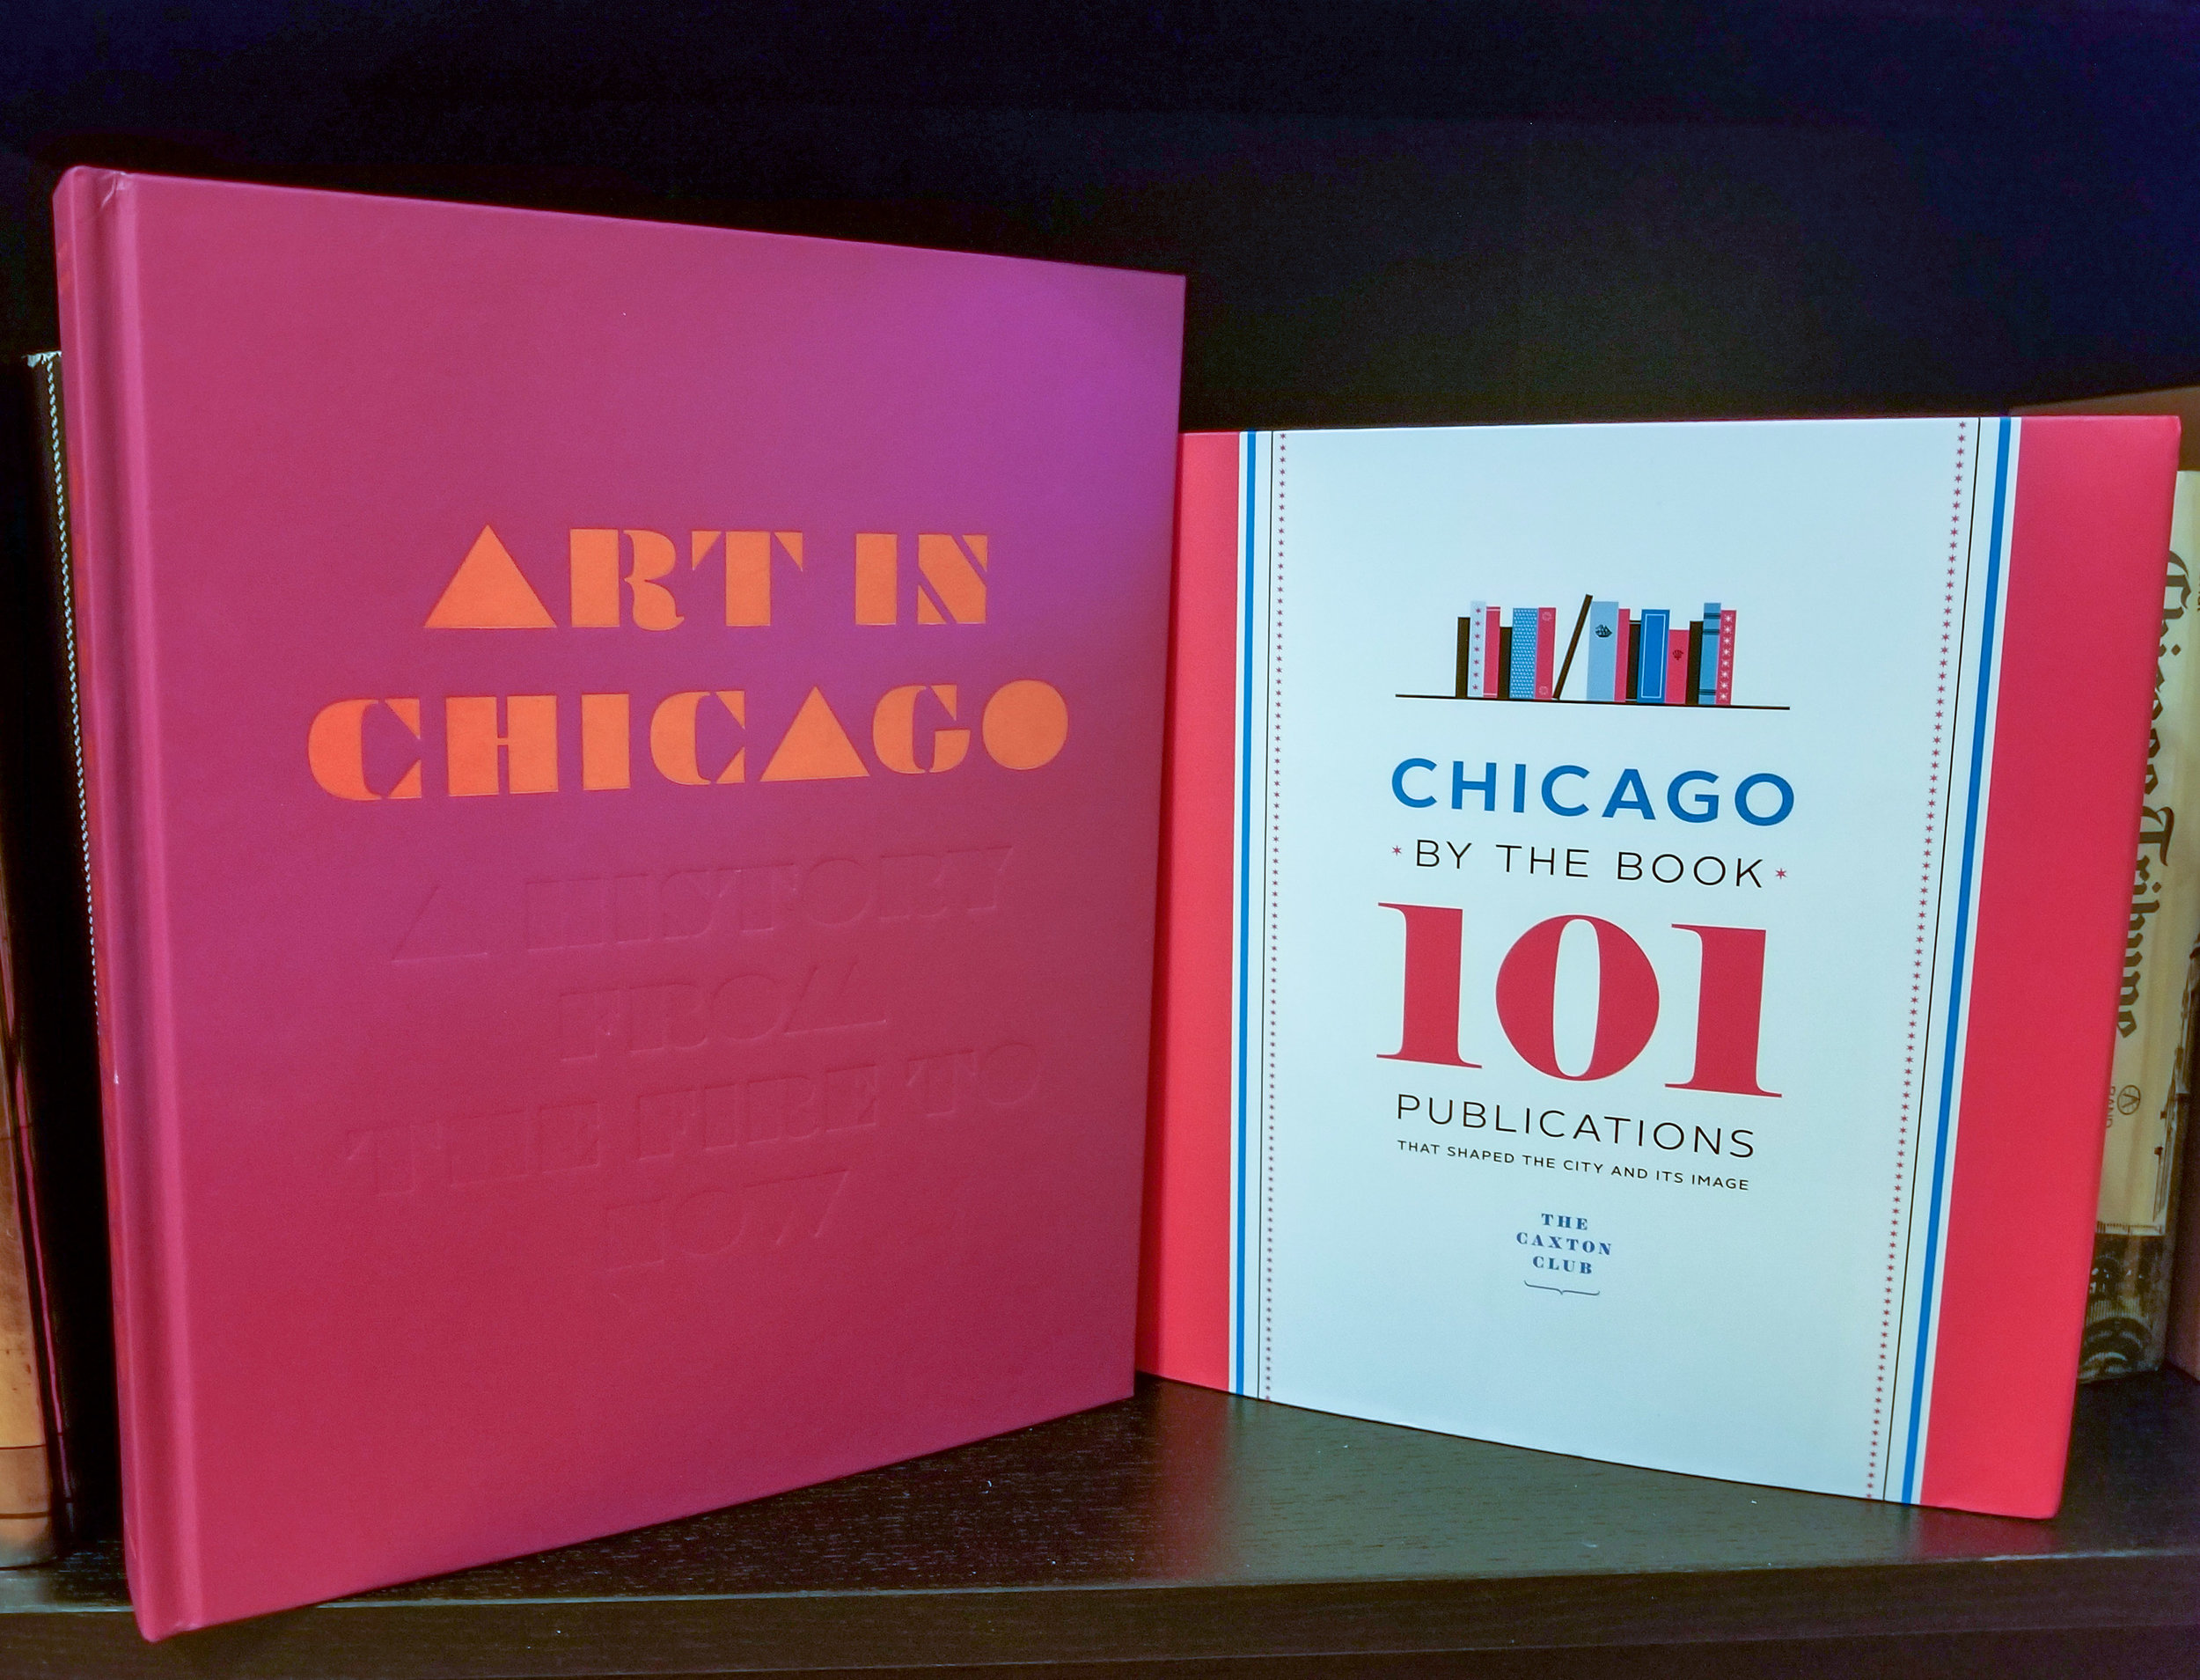 ART IN CHICAGO: From the Fire to Now and CHICAGO BY THE BOOK, two publications made possible by Art Design Chicago.